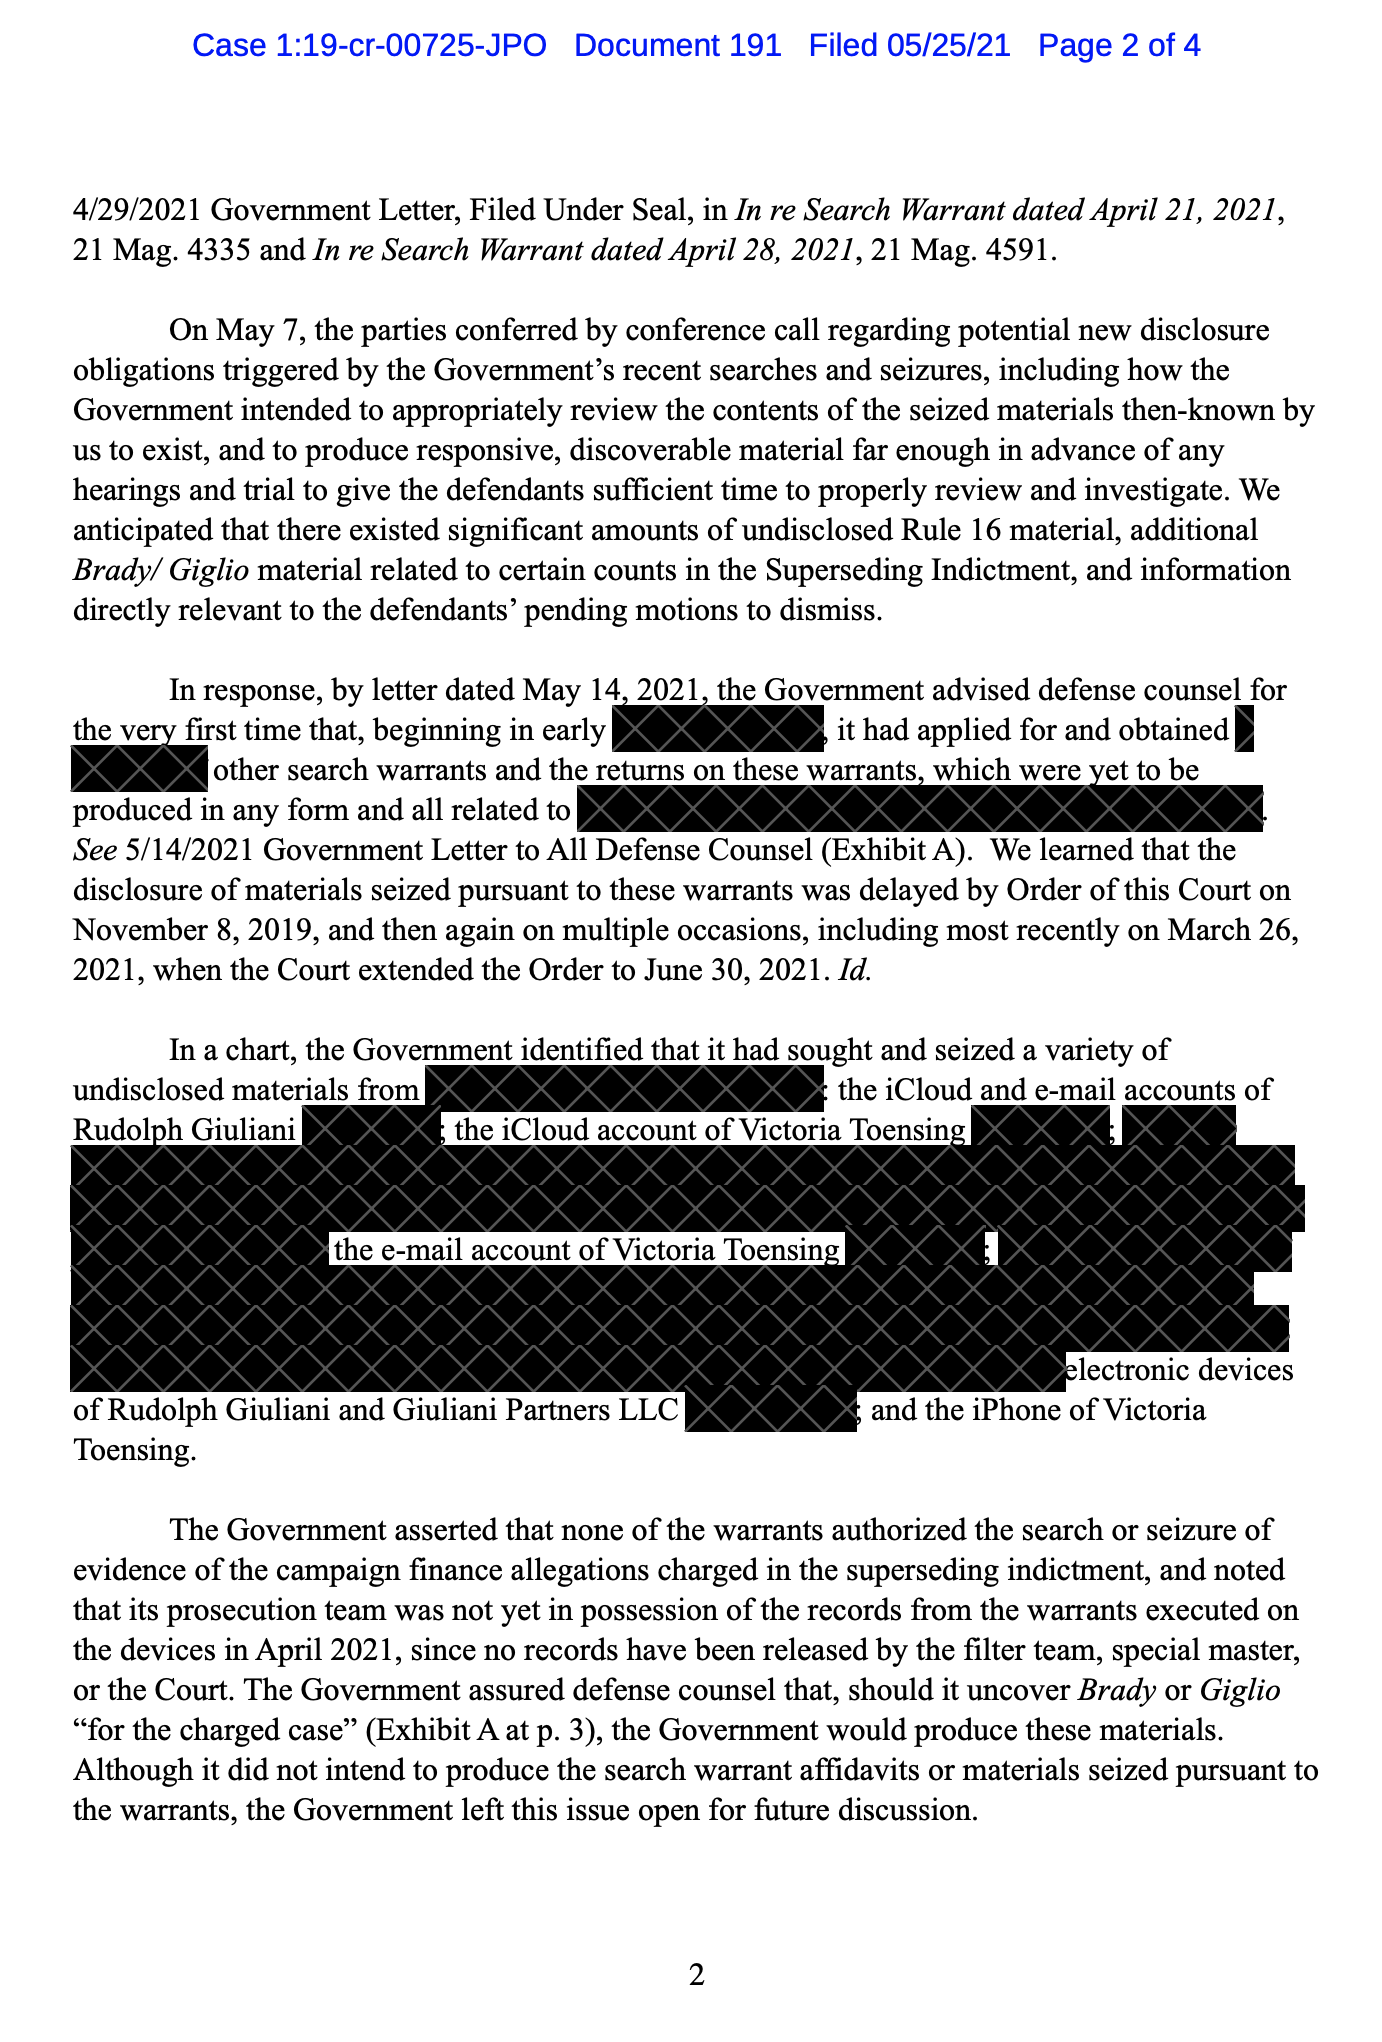 Screen-Shot-2021-05-25-at-1.32.11-PM Federal Authorities Seize Widespread Array Of Documents From Giuliani Donald Trump Featured Politics Russia Top Stories